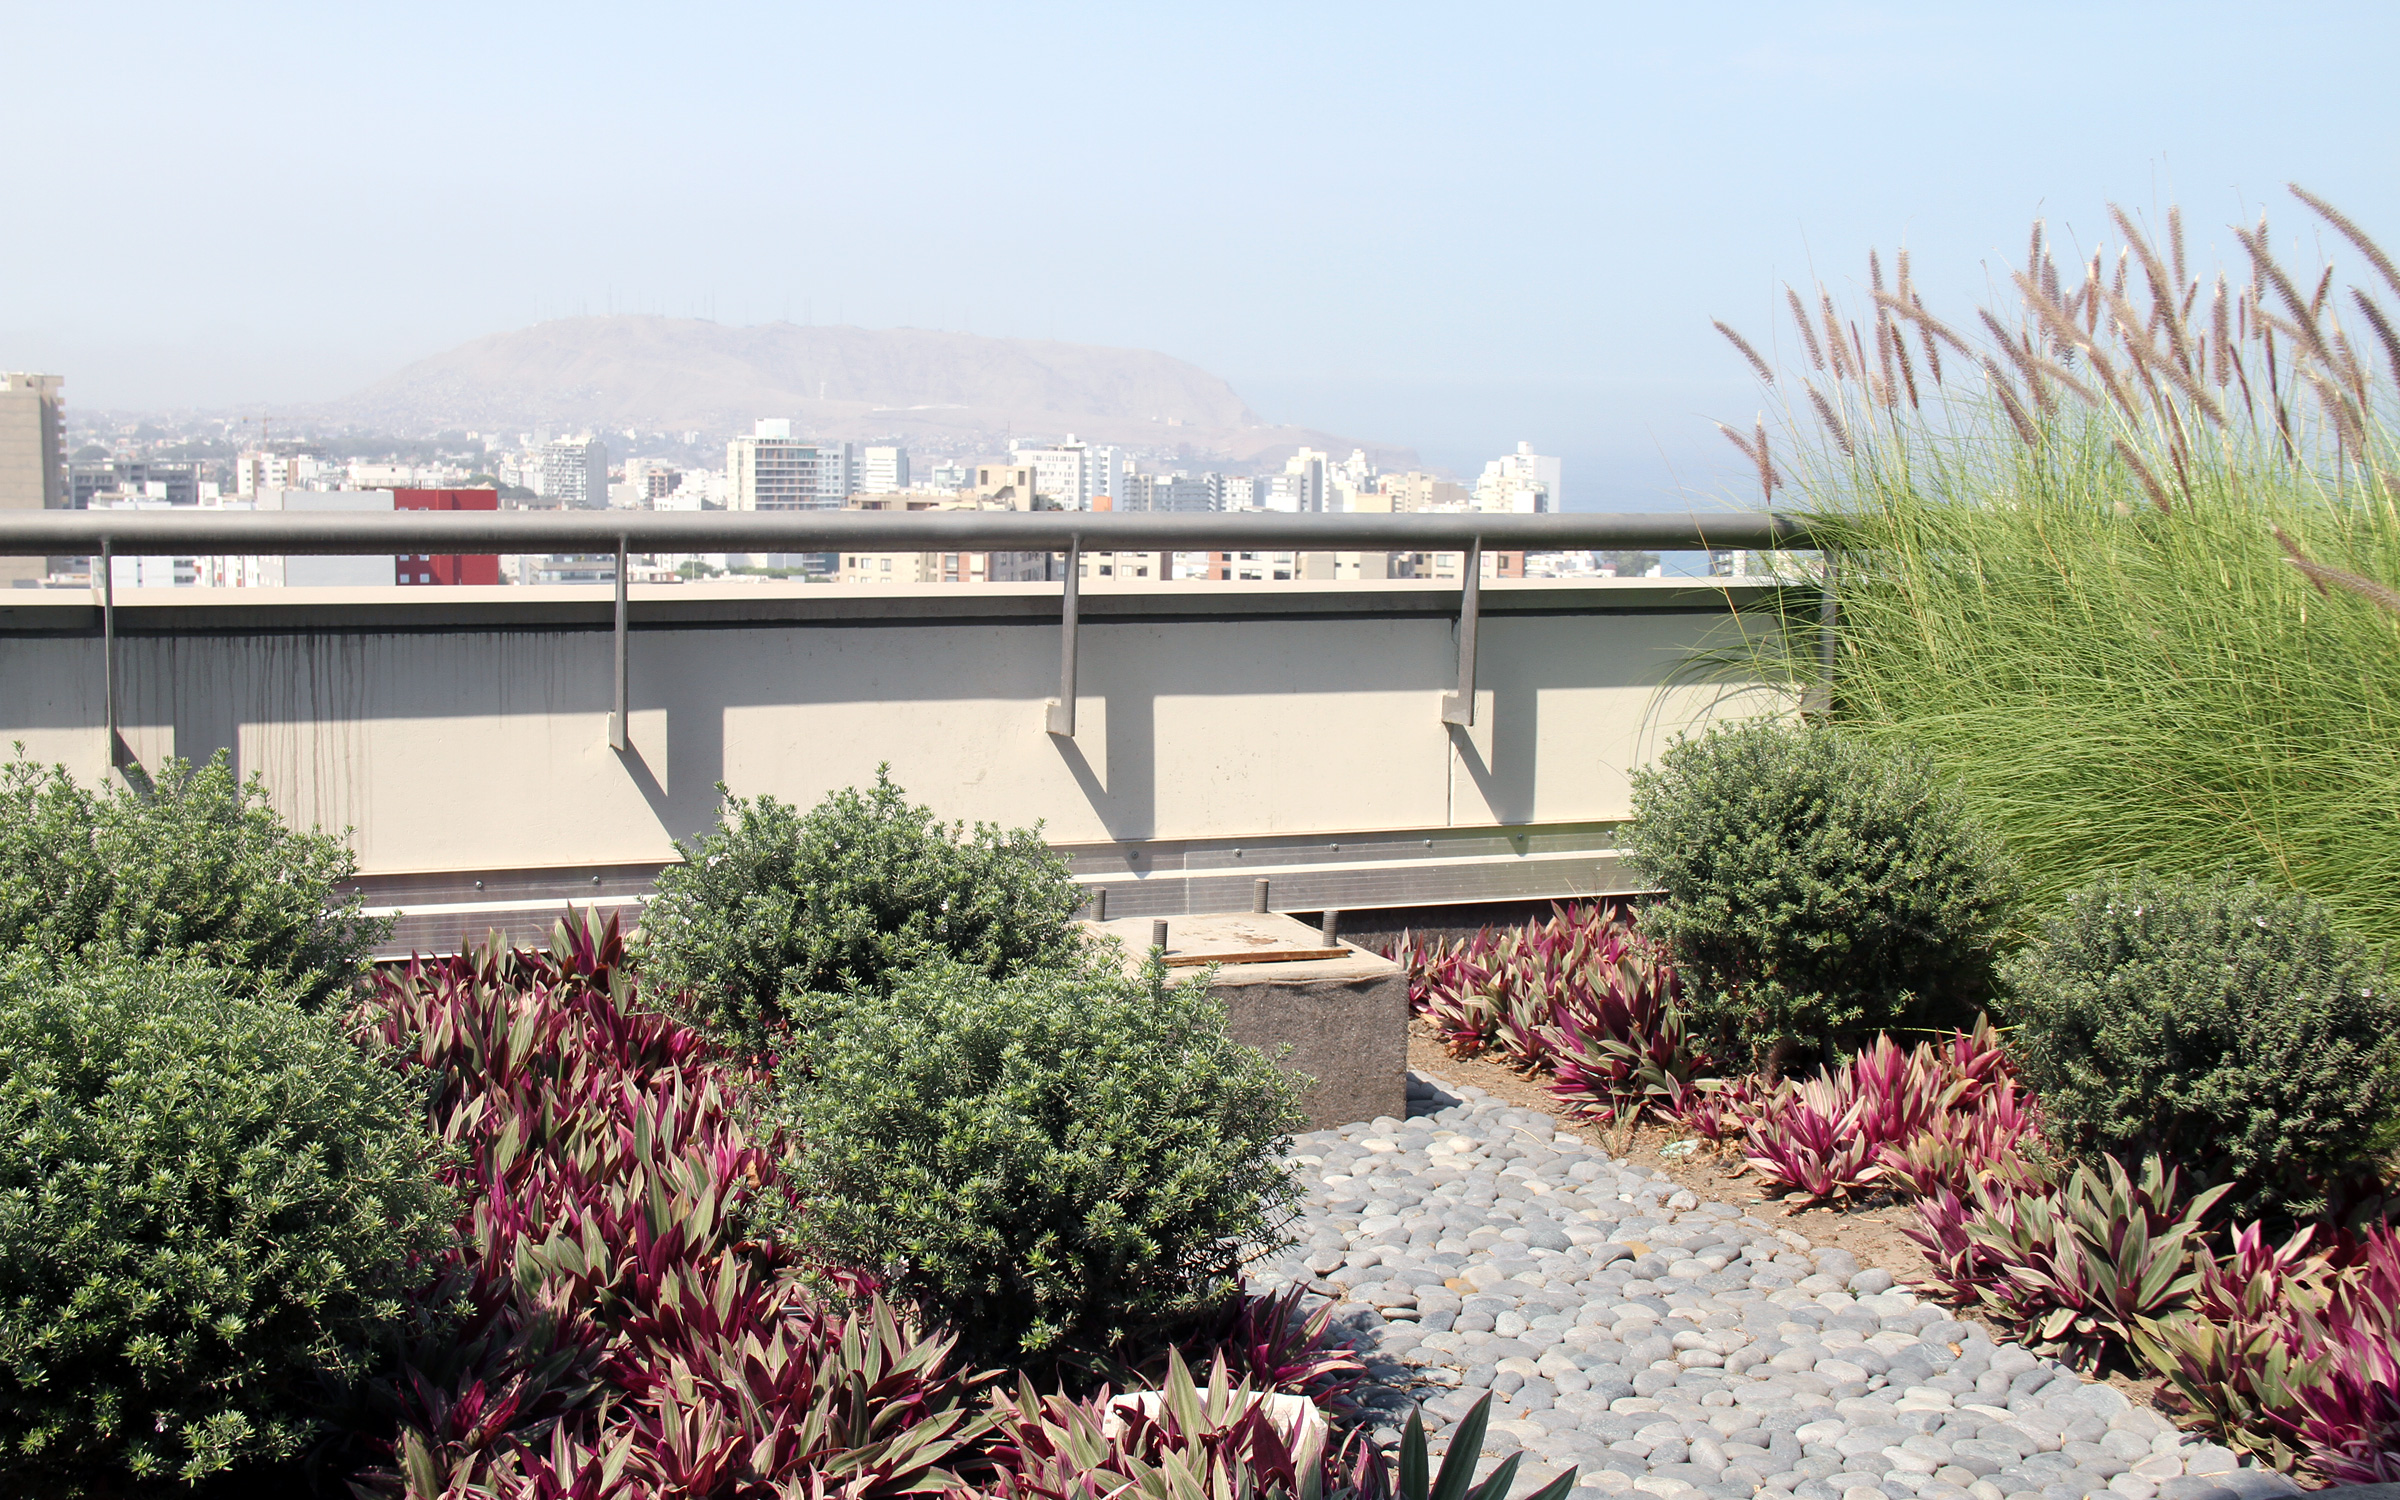 Roof garden with shrubs, ornamental grasses and small bushes in the city